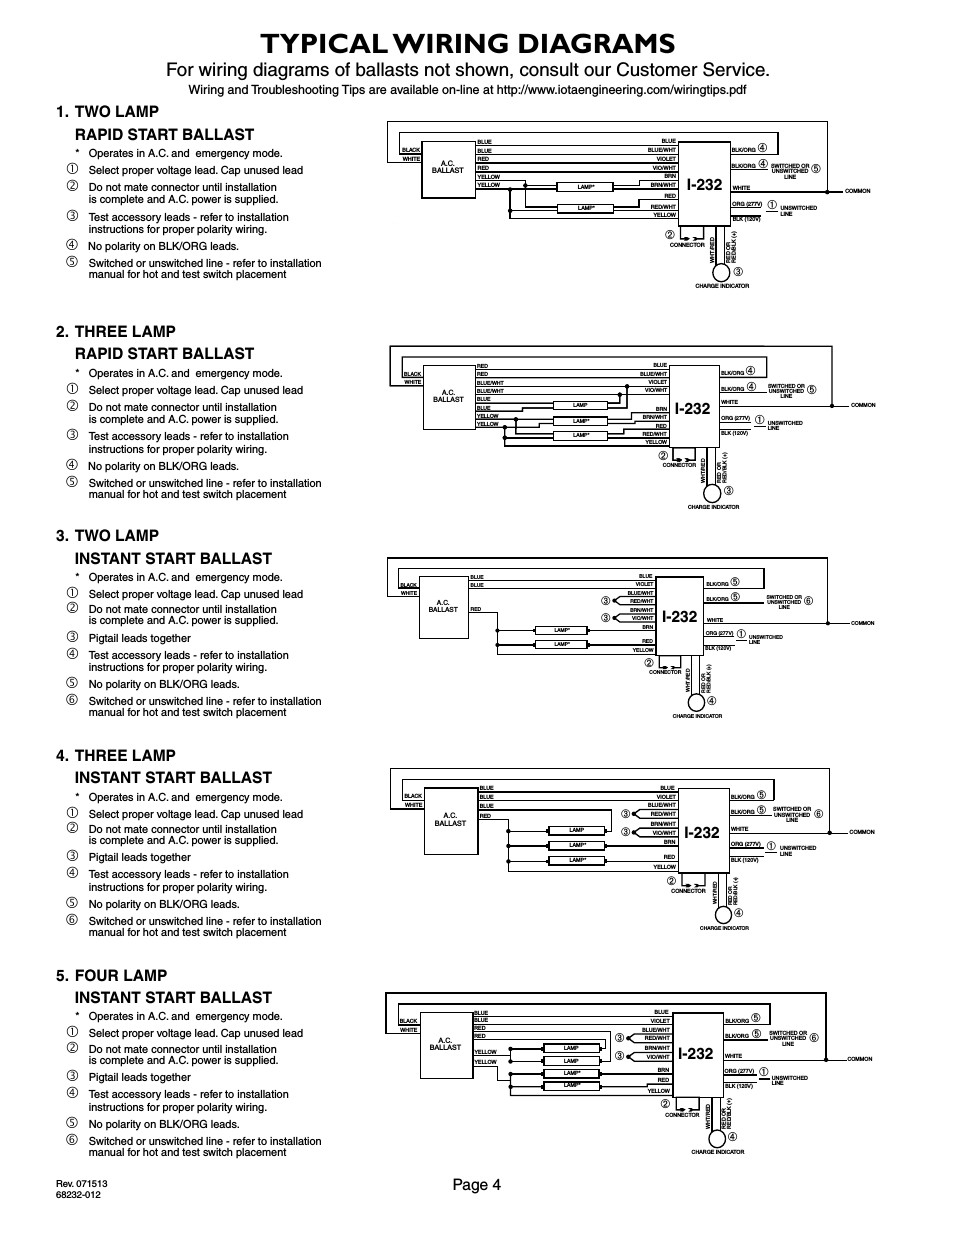 iota i320 emergency ballast wiring diagram Download-Emergency Ballast Wiring 2-g